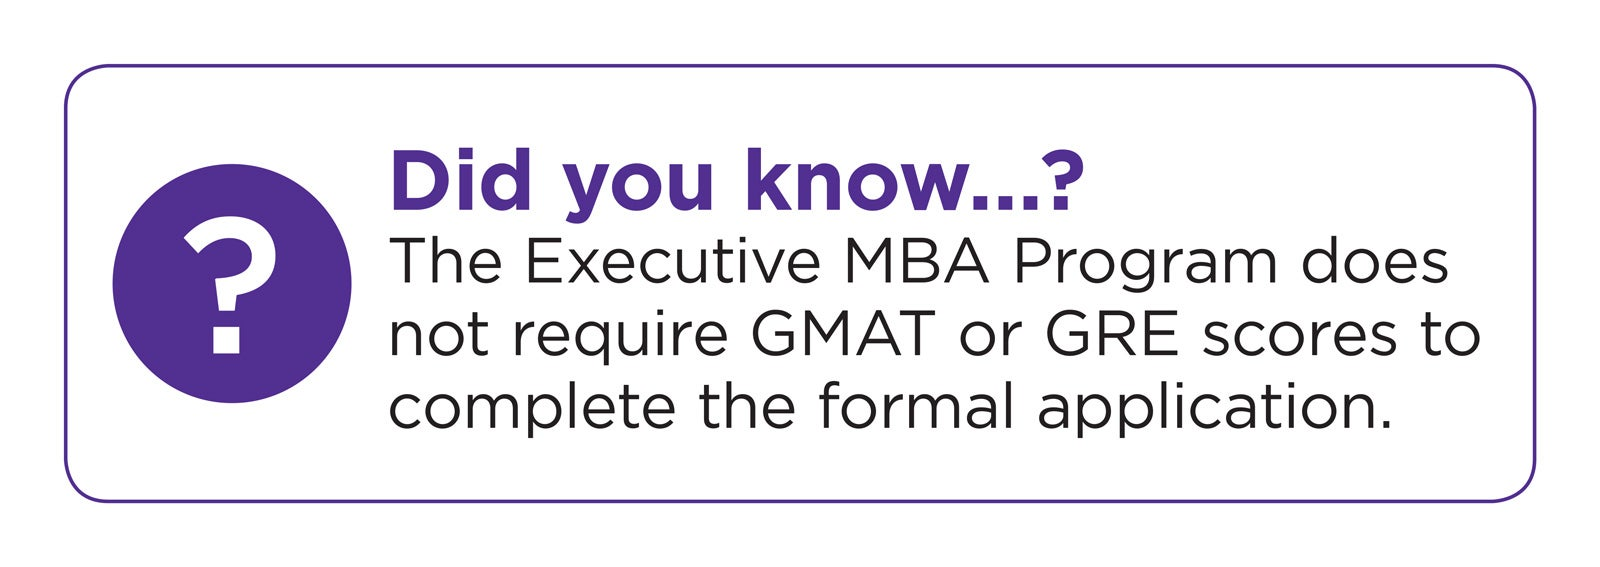 nyu stern part time mba essays Nyu stern part time mba essays harvard stern part mba essays nyu harvard time march 8, 2018 @ 10:50 pm respondeat superior essay essay writer uk reviews of asmf what can we do to help the environment essay wharton mba essay 2016 ncaa wyatt.